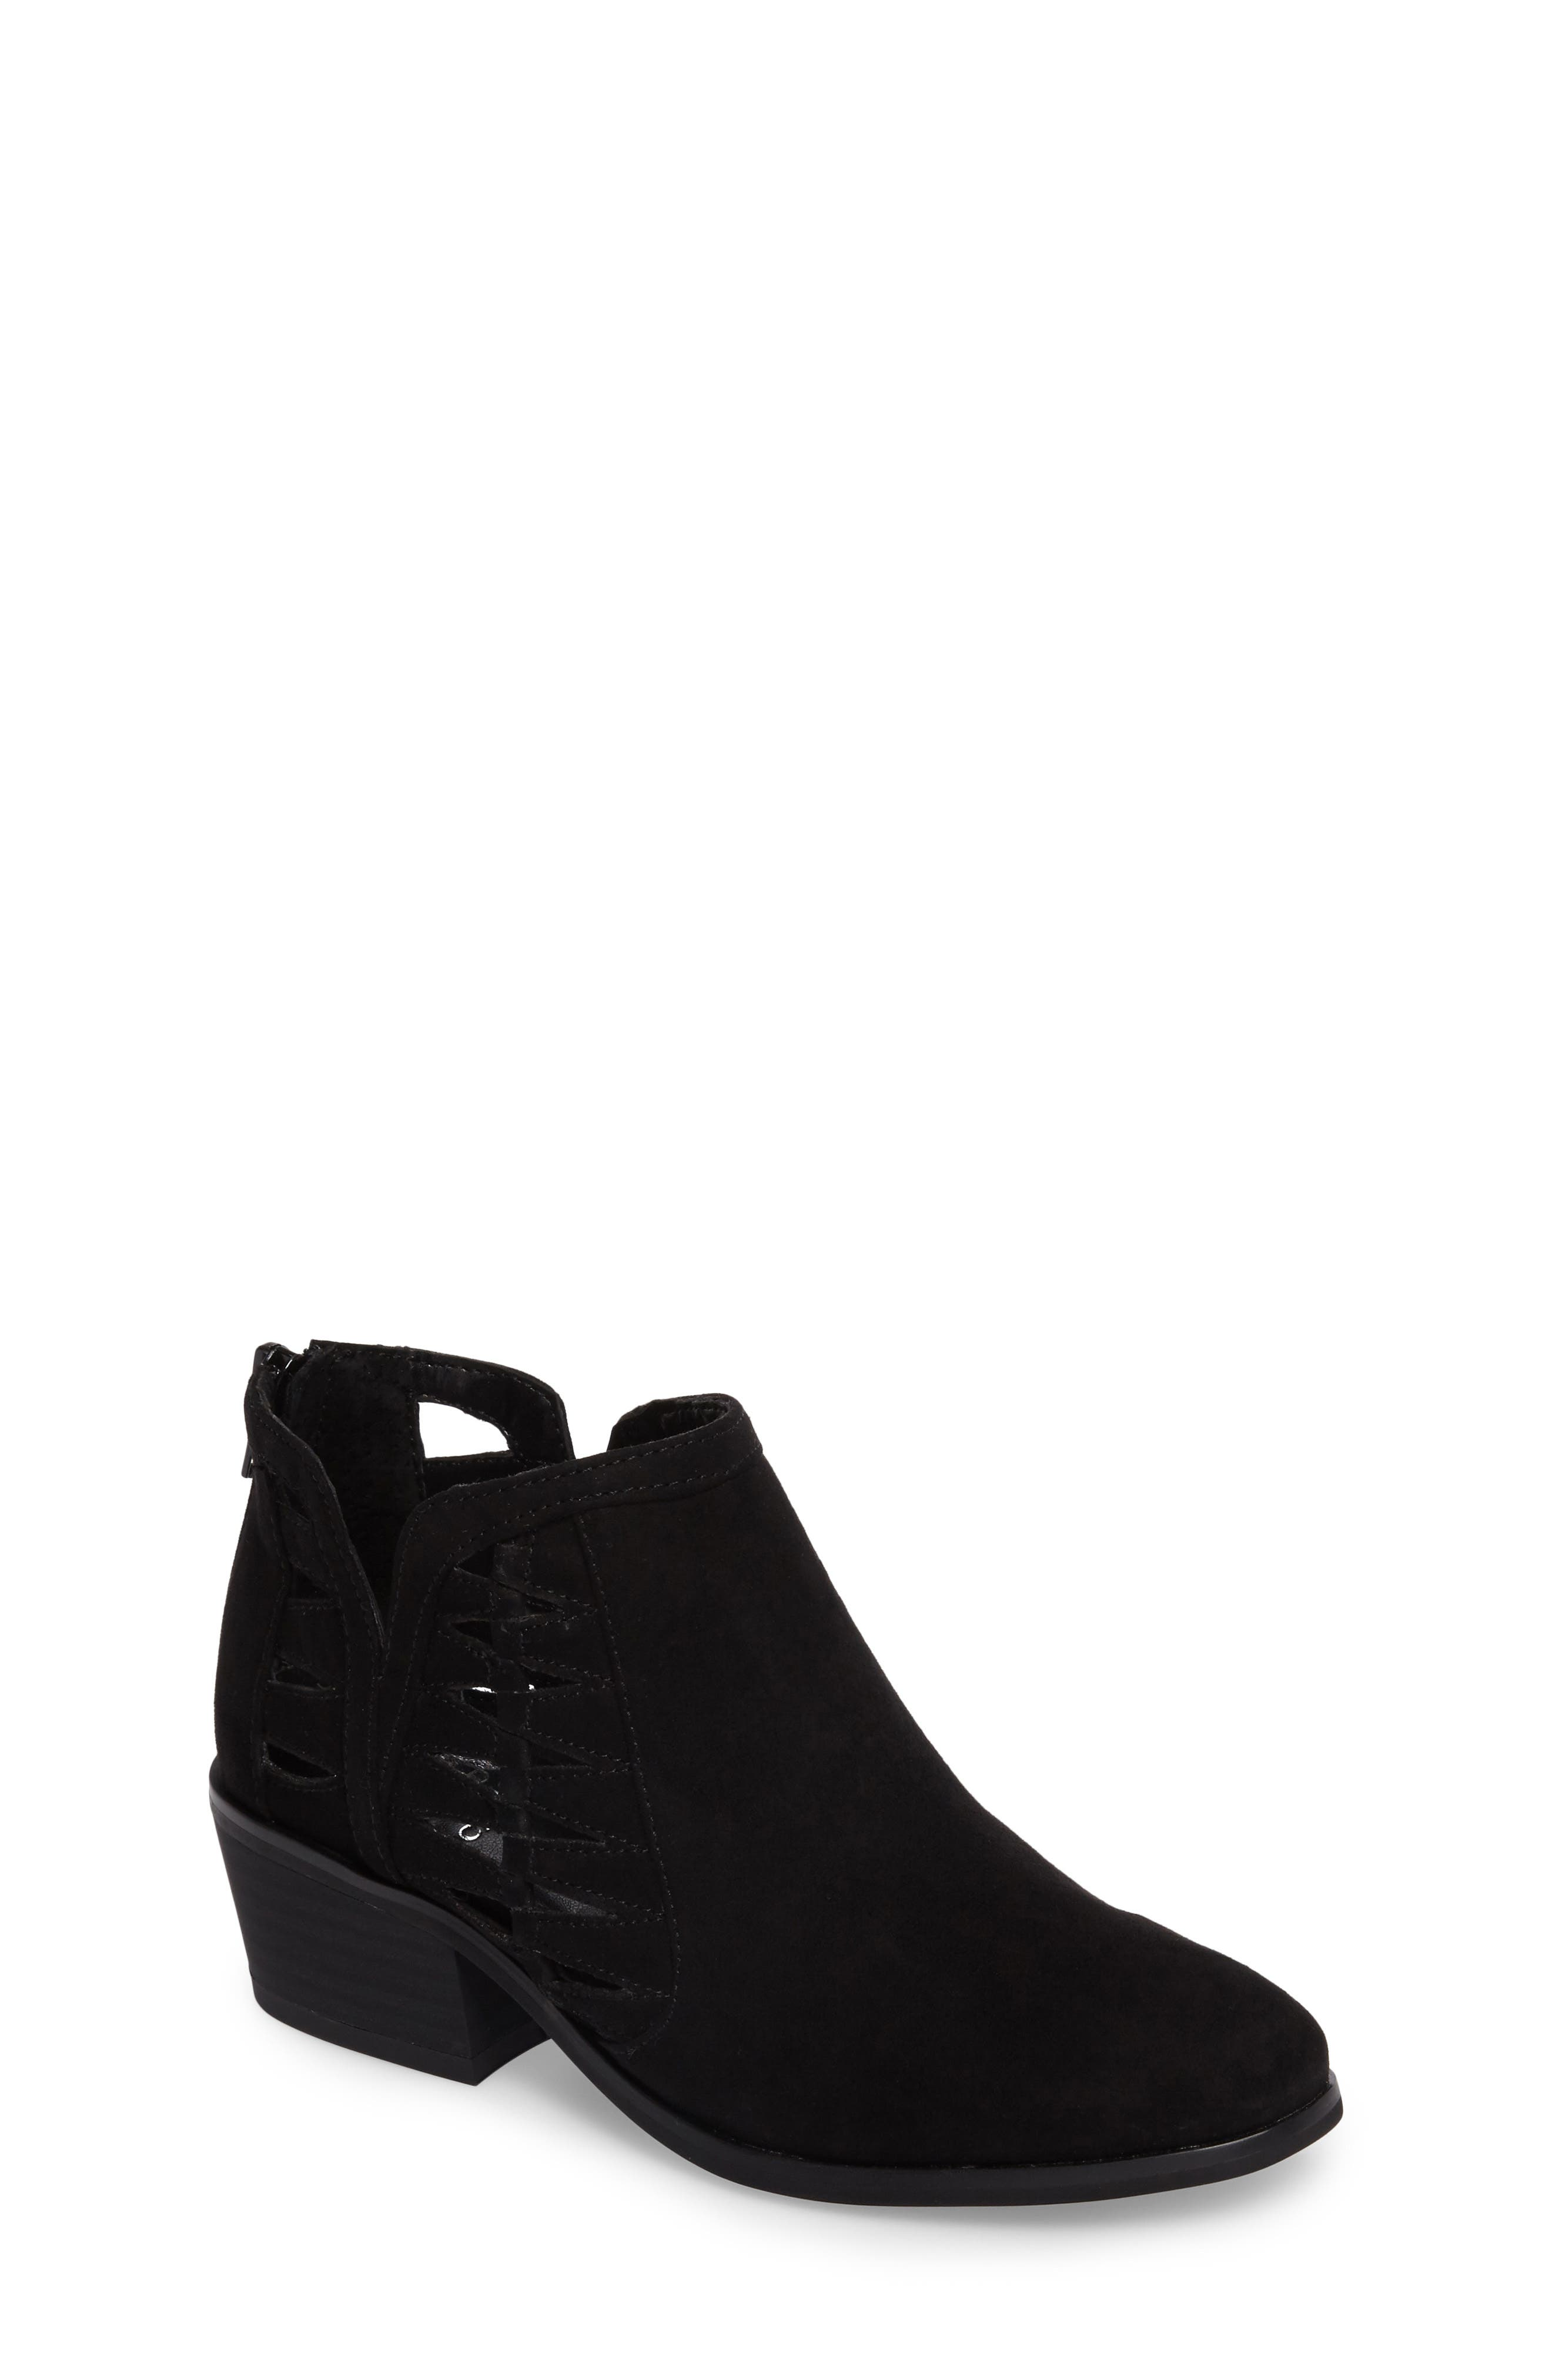 Vince Camuto Peera Cutout Bootie (Toddler, Little Kid & Big Kid)